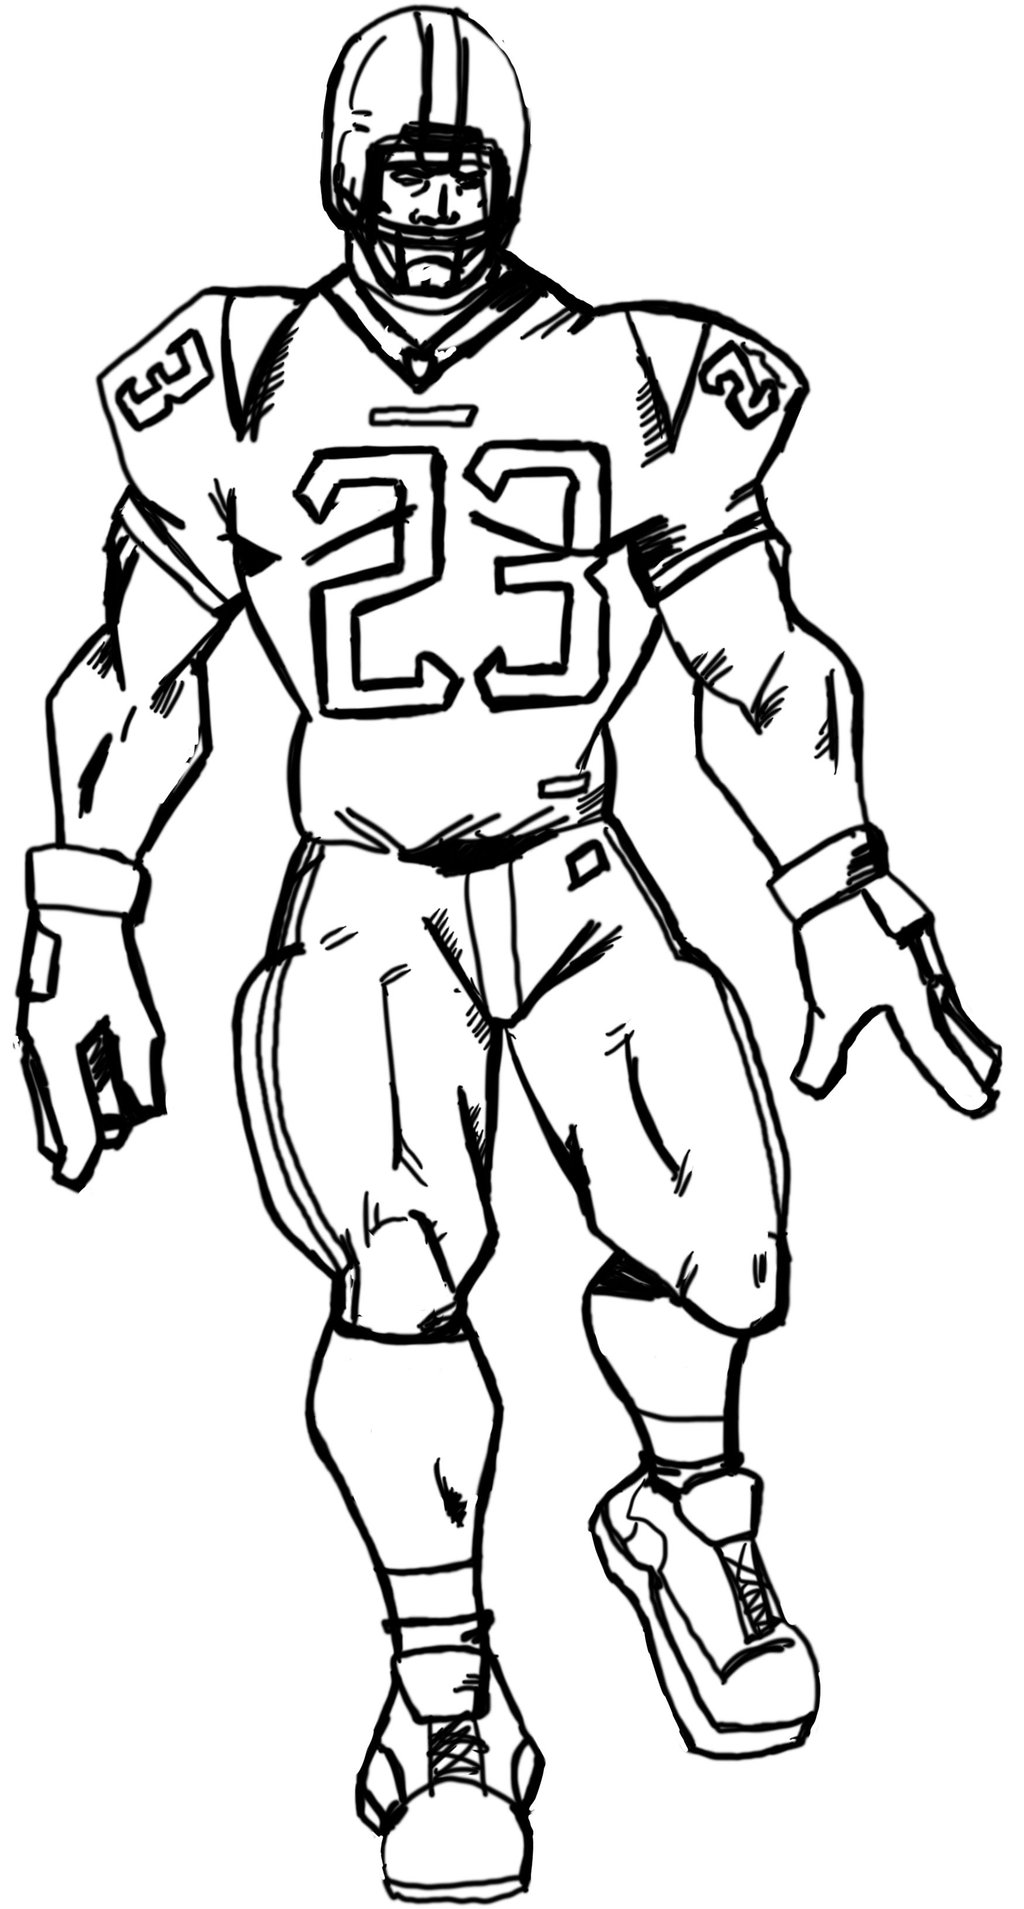 a drawing of a football player how to draw a football player drawingforallnet drawing football a player of a